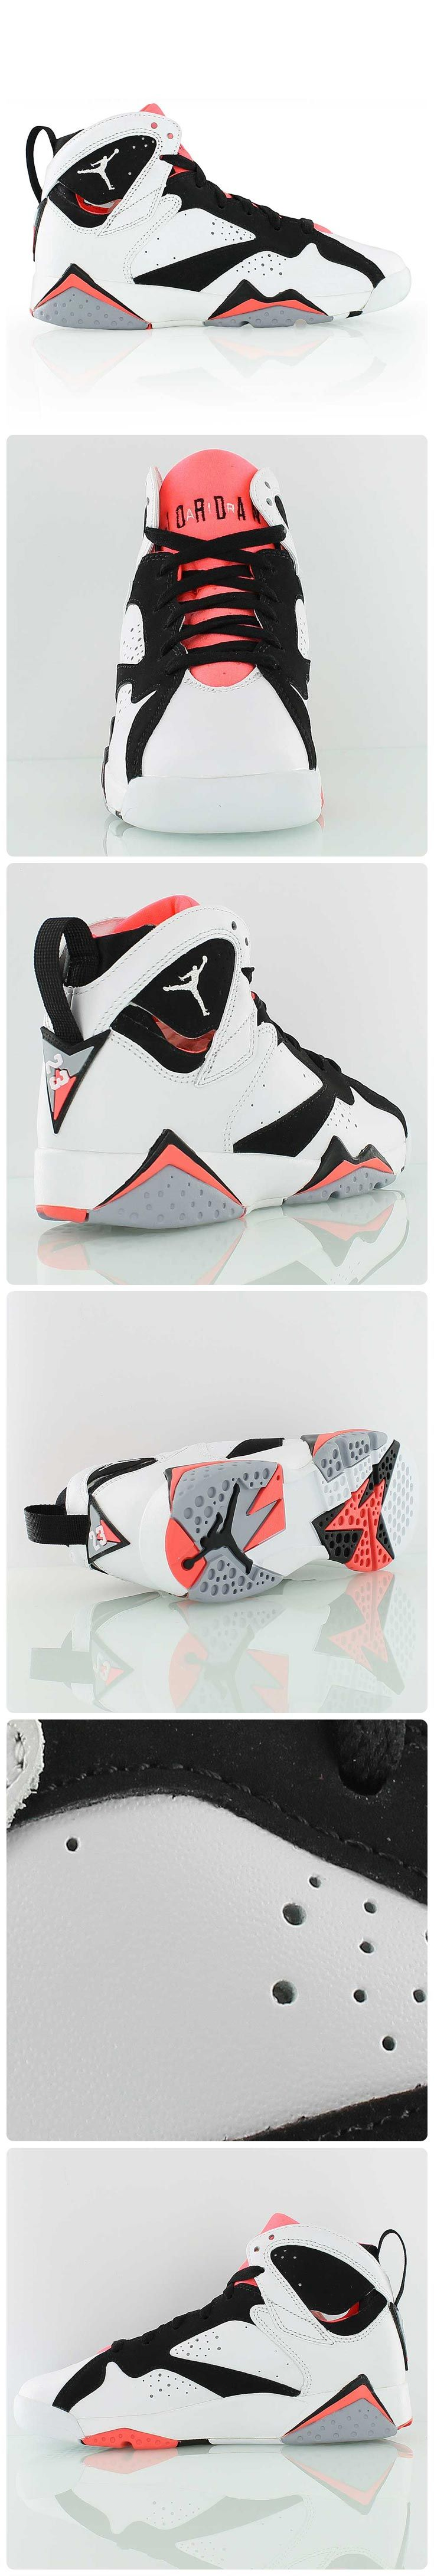 """Air Jordan 7 Retro GG """"Hot Lava"""" exclusively for all the Jordan girls out there"""